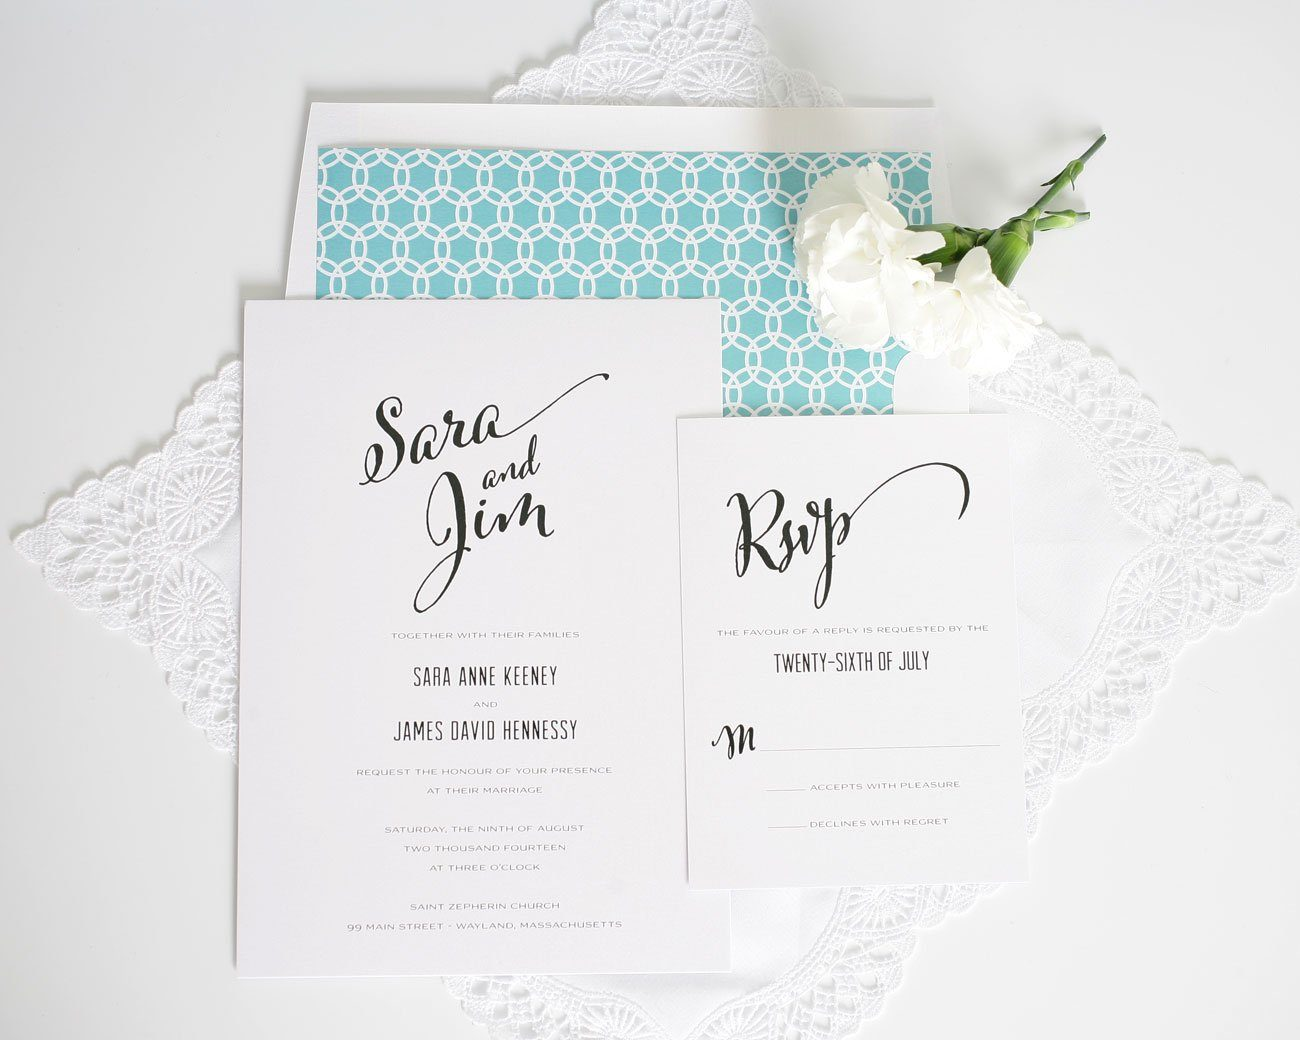 Calligraphy wedding invitations in aqua